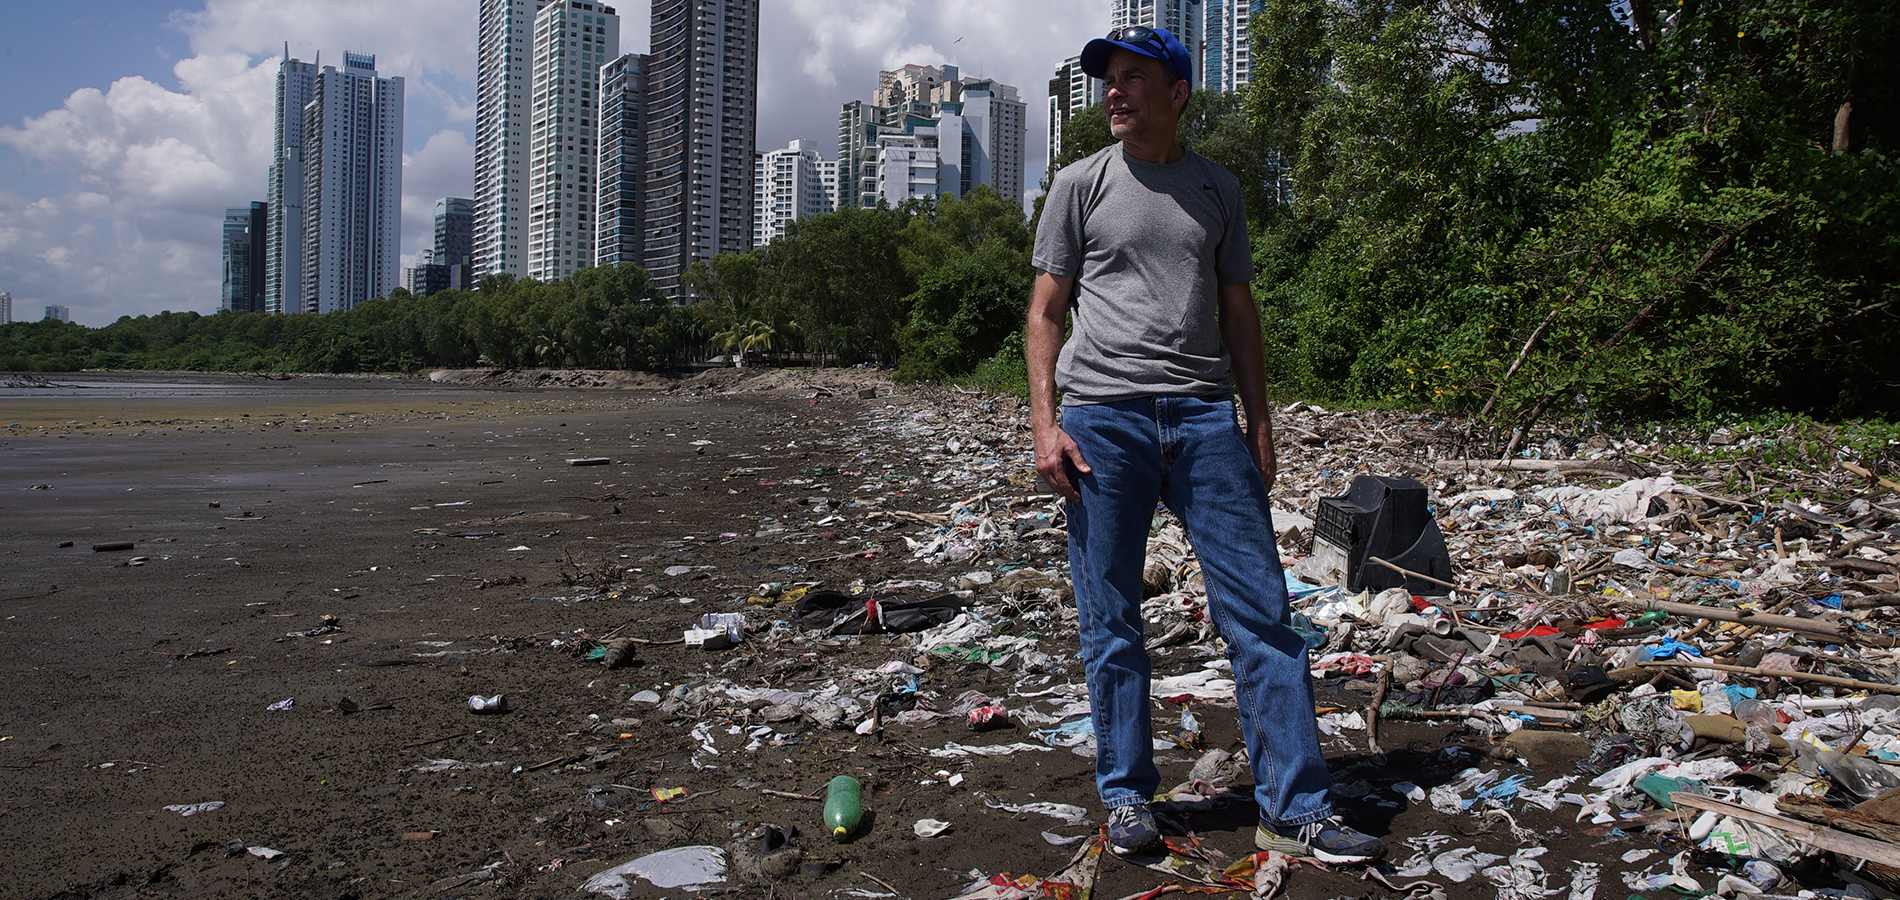 SC Johnson Chairman and CEO Fisk Johnson investigating firsthand the effects of plastic pollution.